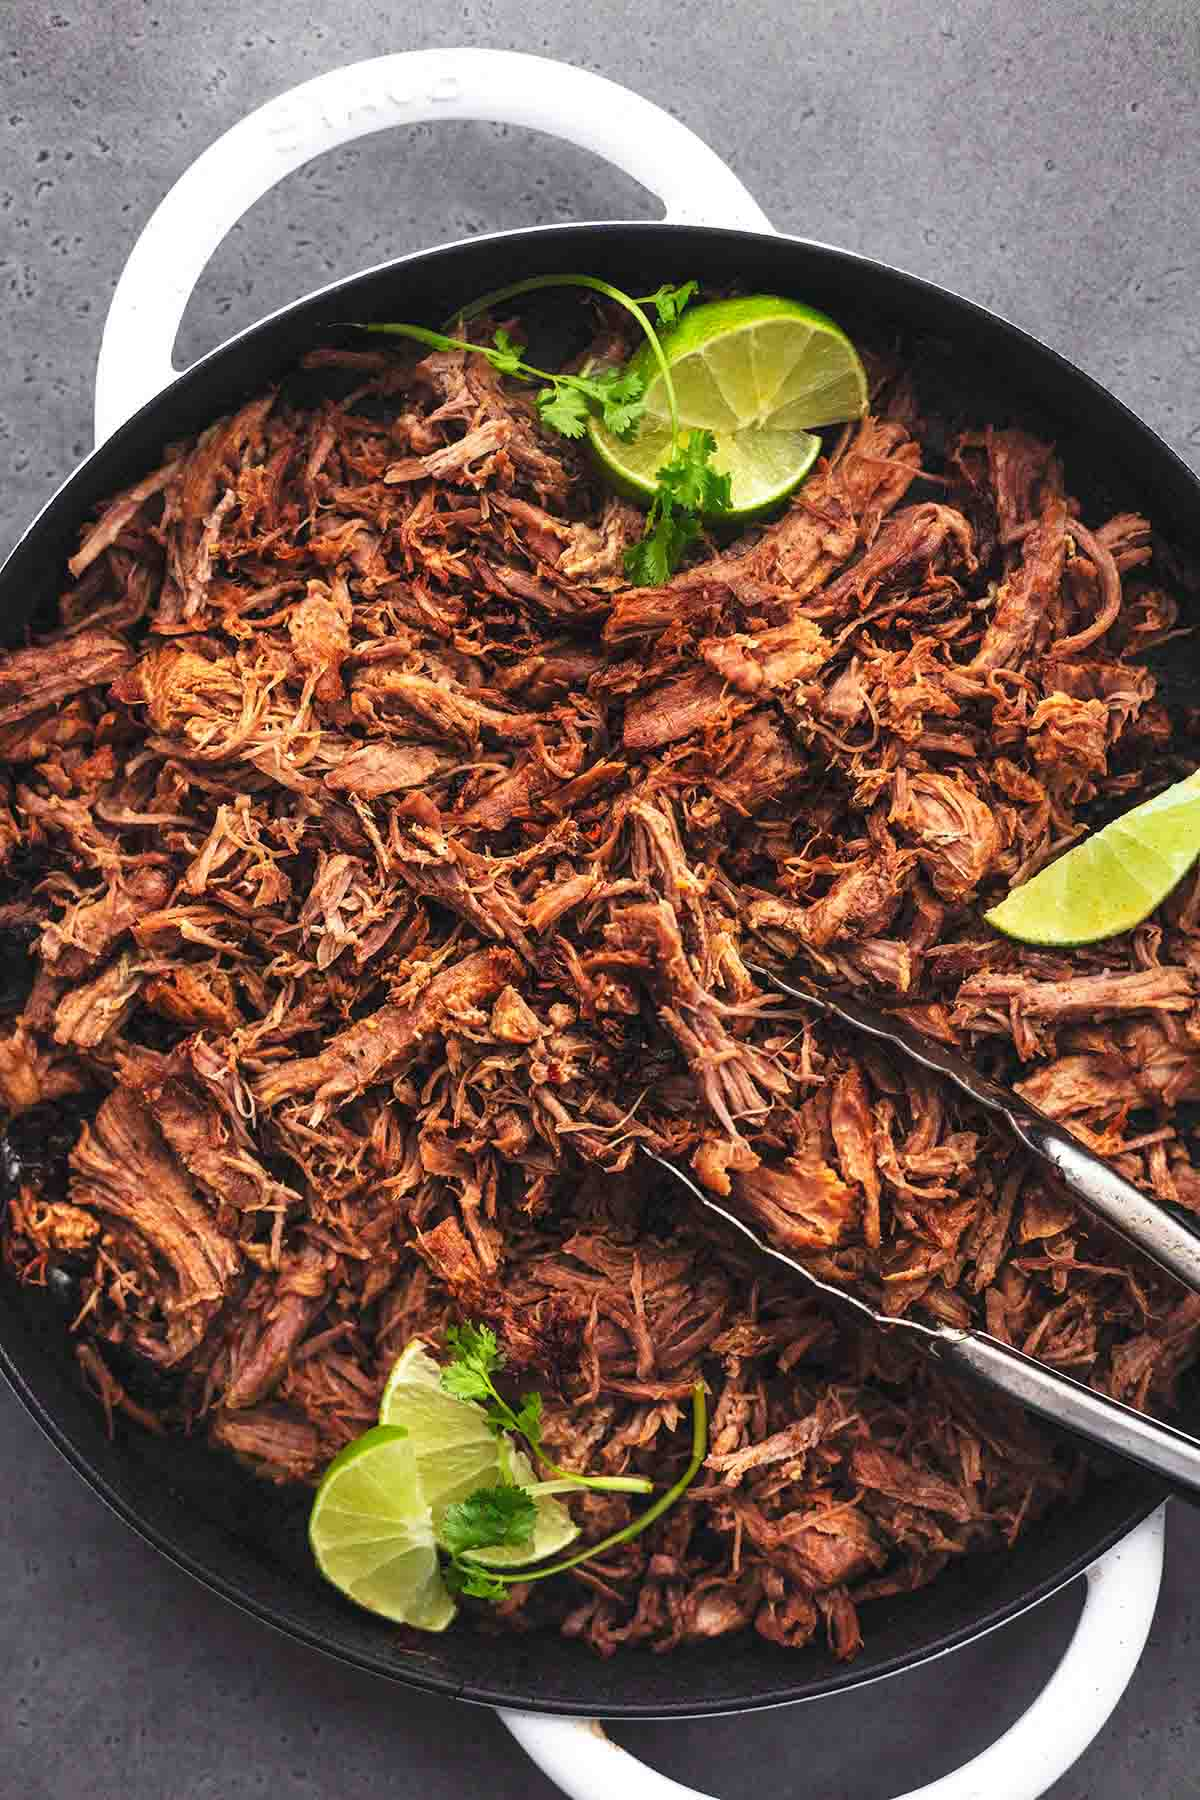 shredded meat with limes in a skillet